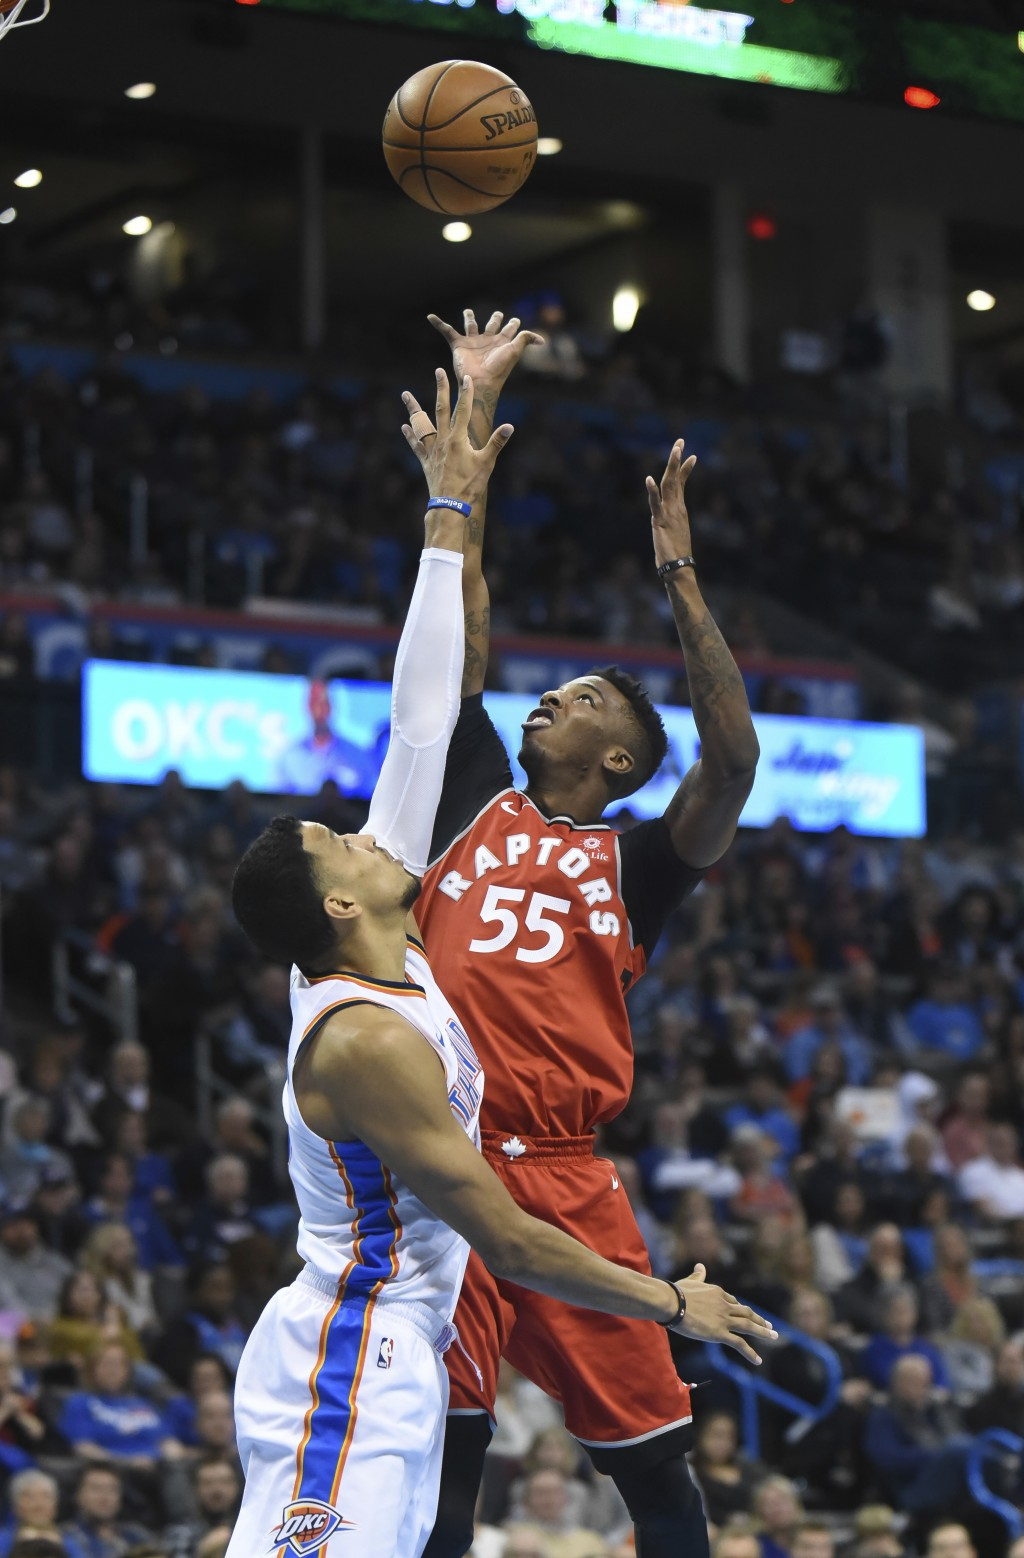 Toronto Raptors' Delon Wright (55) shoots over Oklahoma City Thunder's Andre Roberson during the second quarter of an NBA basketball game in Oklahoma ...